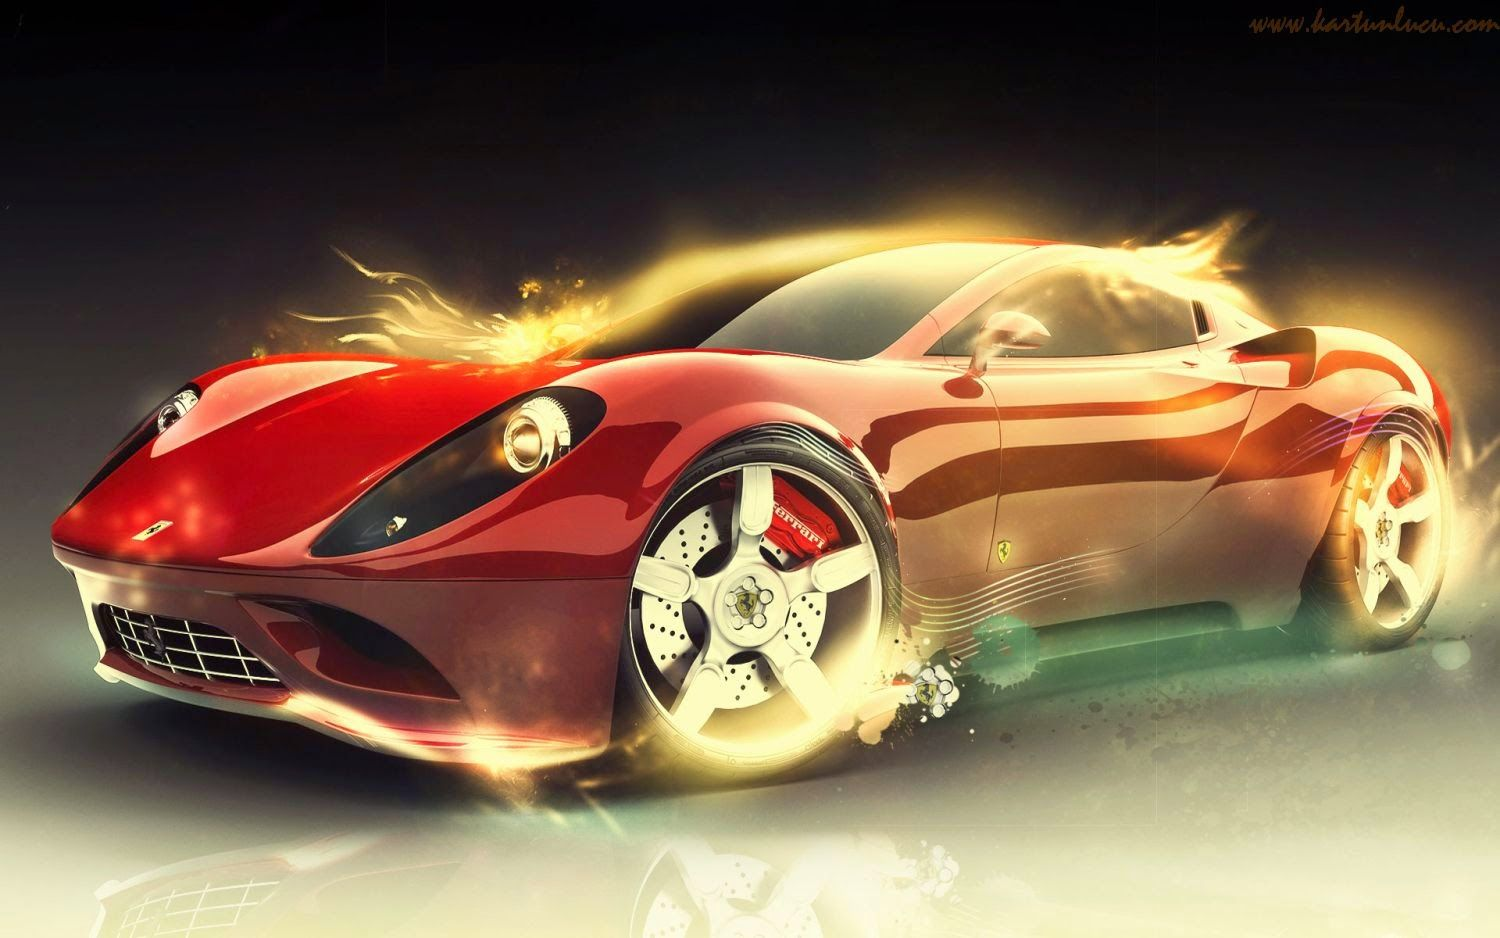 Ferrari Cars Wallpapers And Pictures Enjoy New Latest Of We Will Try To Bring The Best For